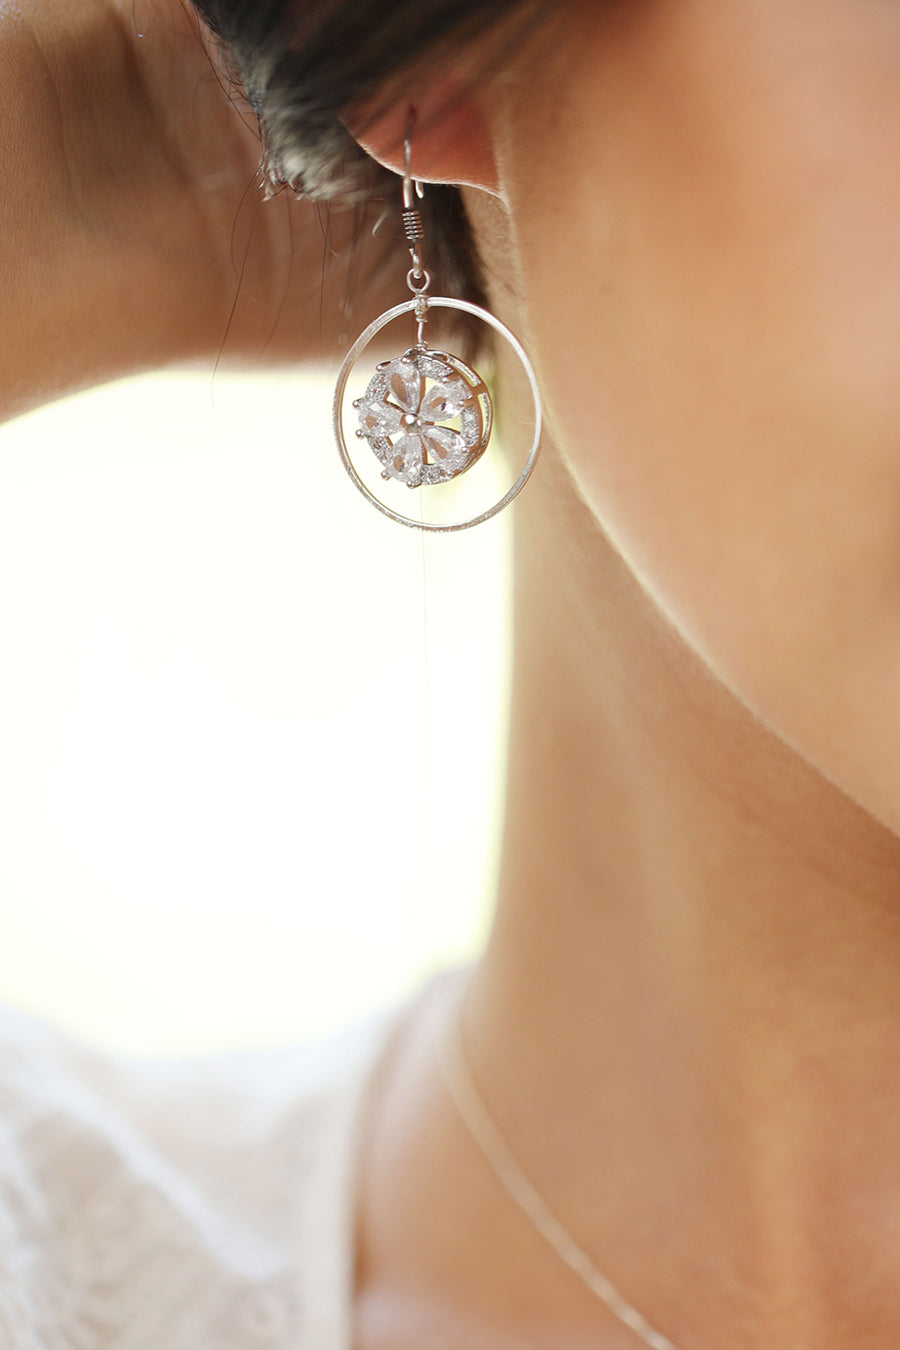 Embedded Flower Cubic Zirconia Earrings Silver